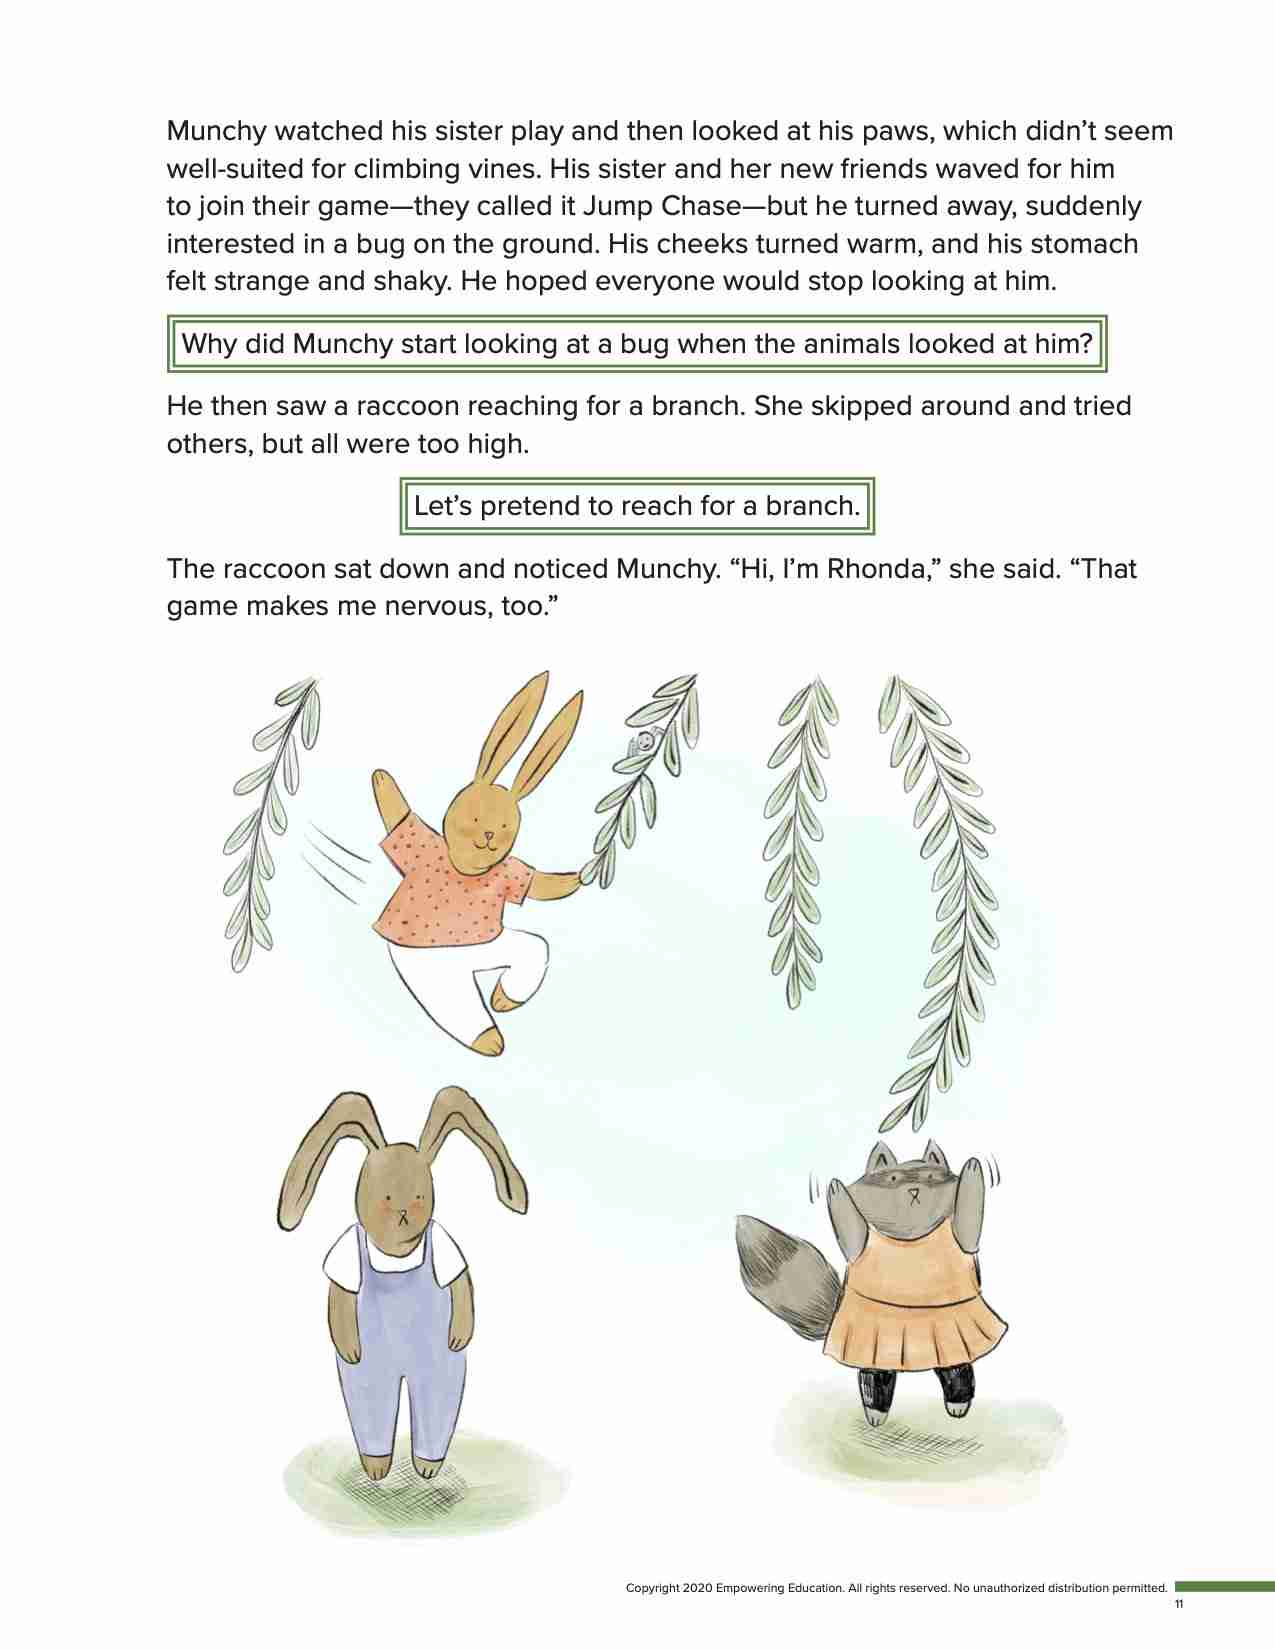 This page from Munchy and Jumpy helps kids learn social-emotional learning